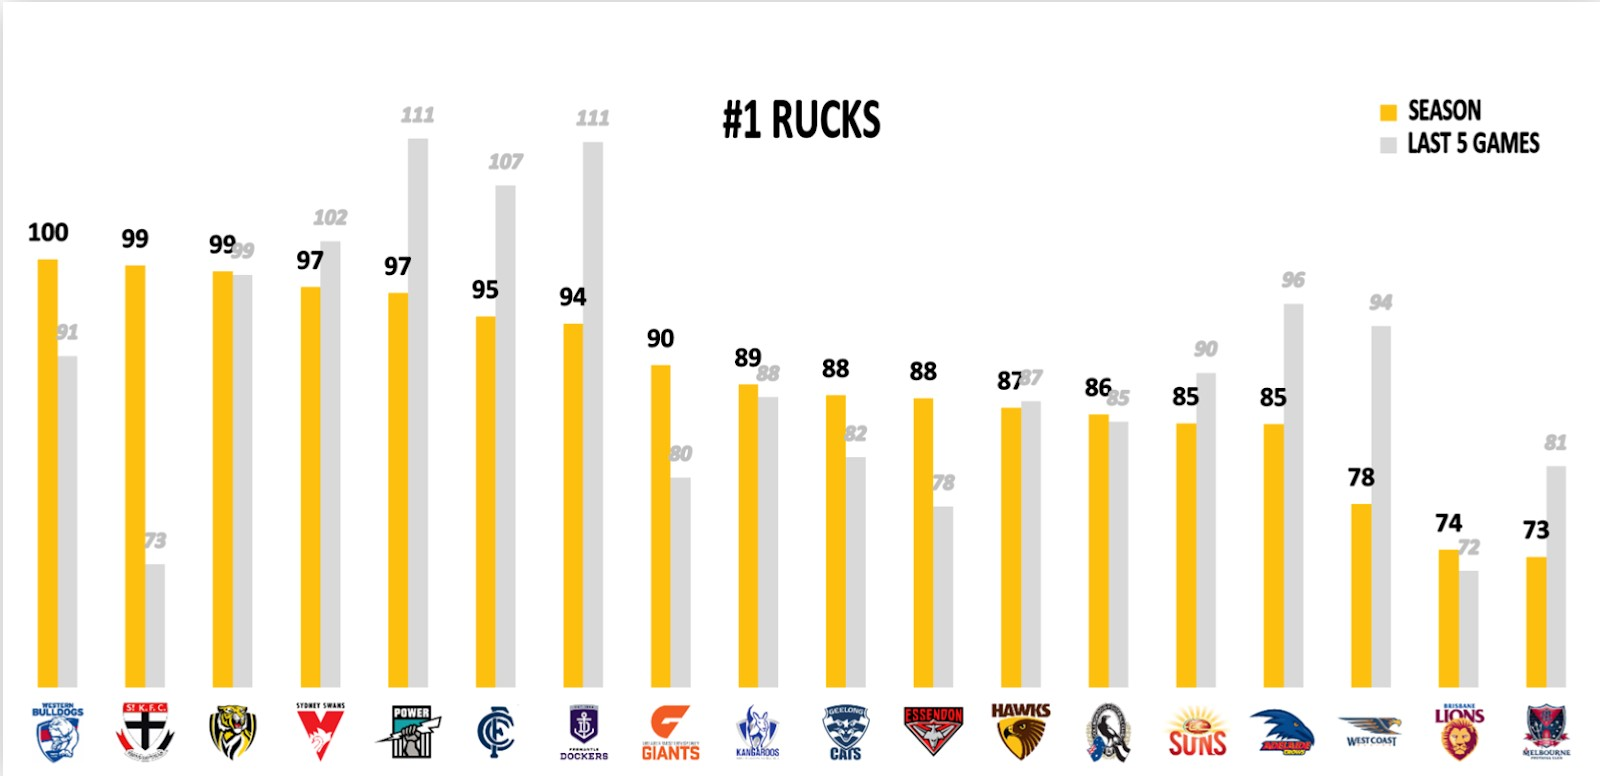 Points Against - Number 1 Rucks